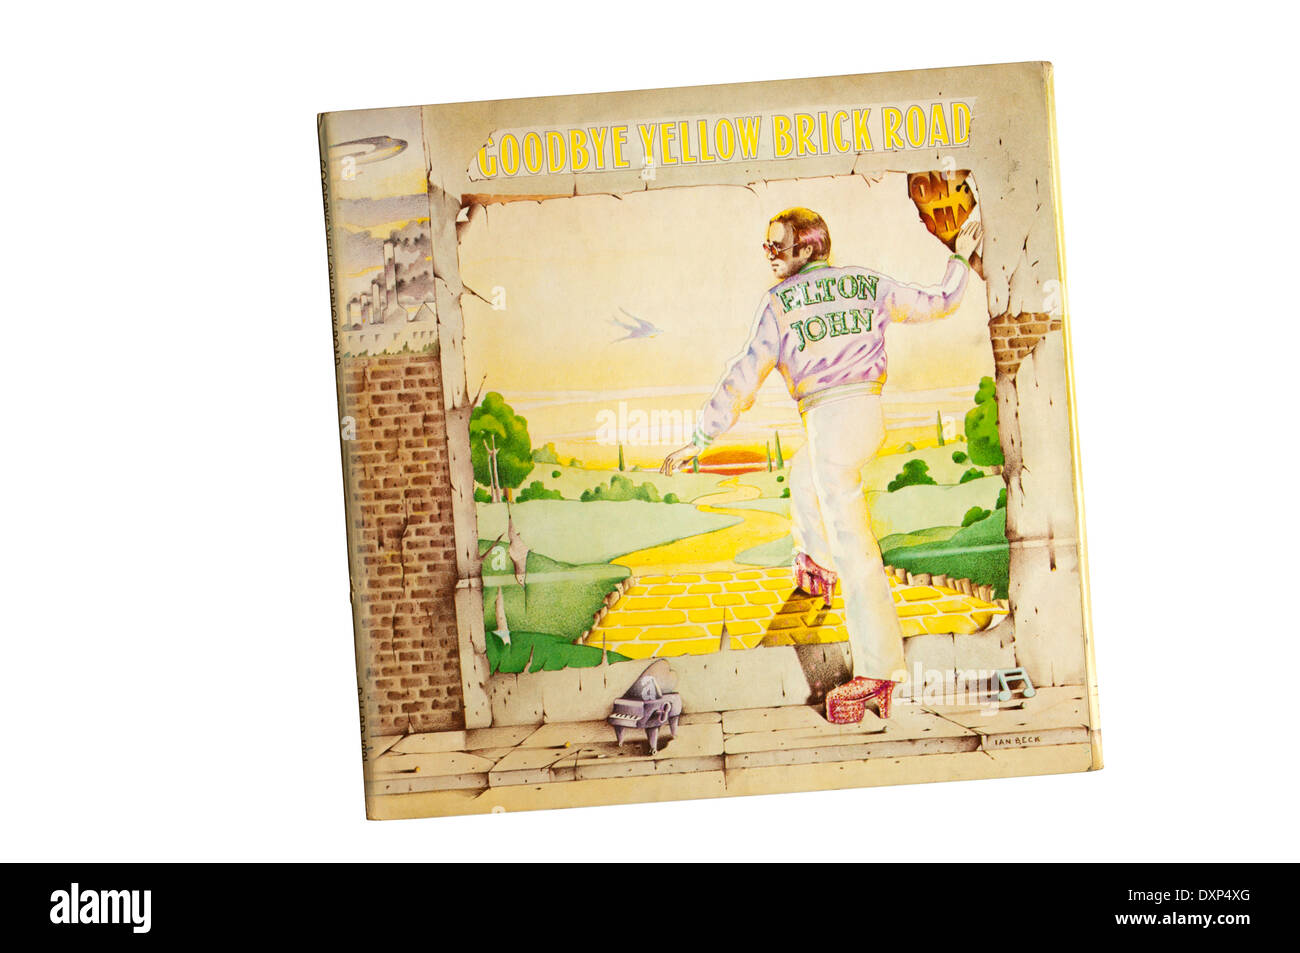 Goodbye Yellow Brick Road was the 7th studio album by the British singer-songwriter Elton John. It was released in 1973. - Stock Image